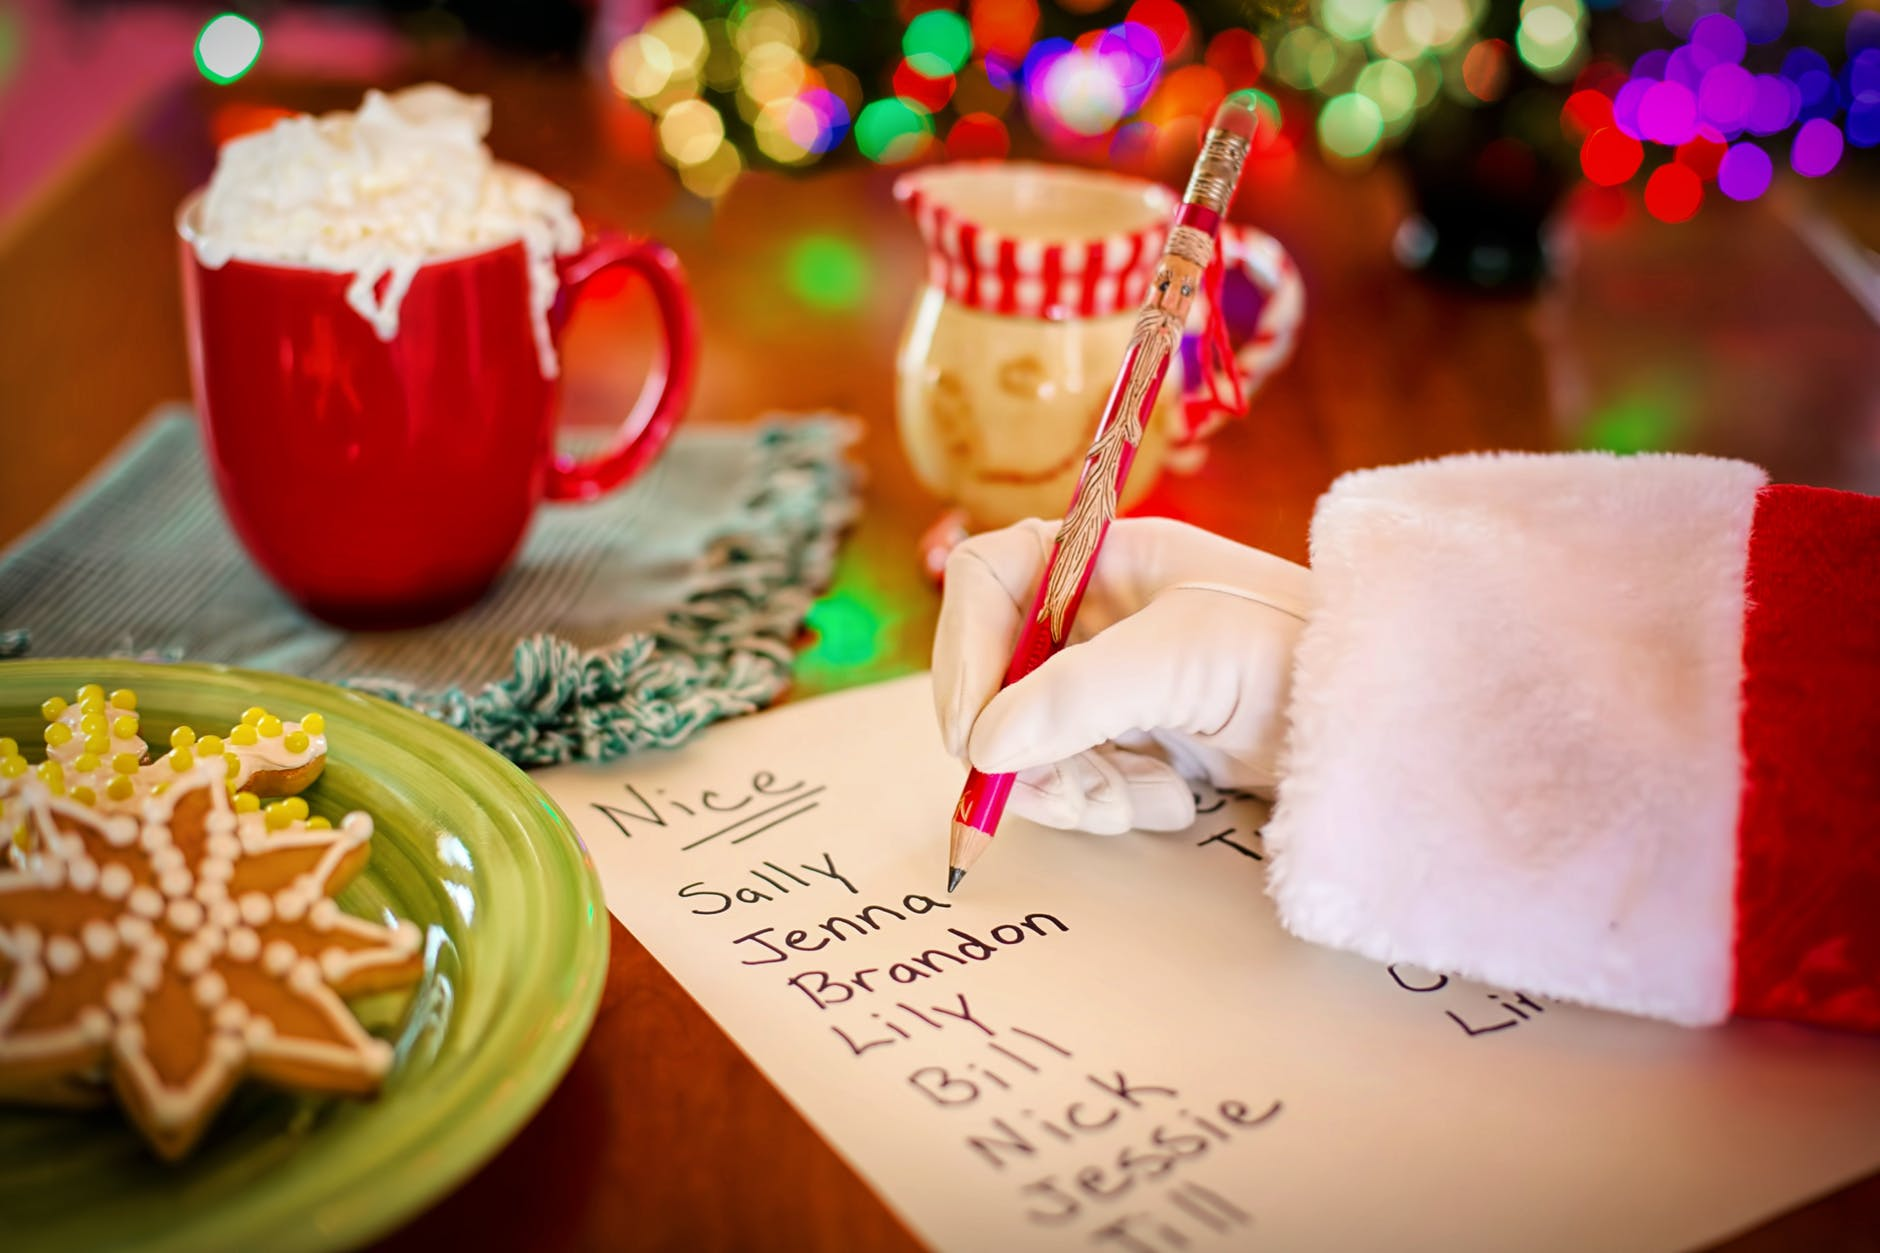 Santa checking off his financial marketing strategy checklist!